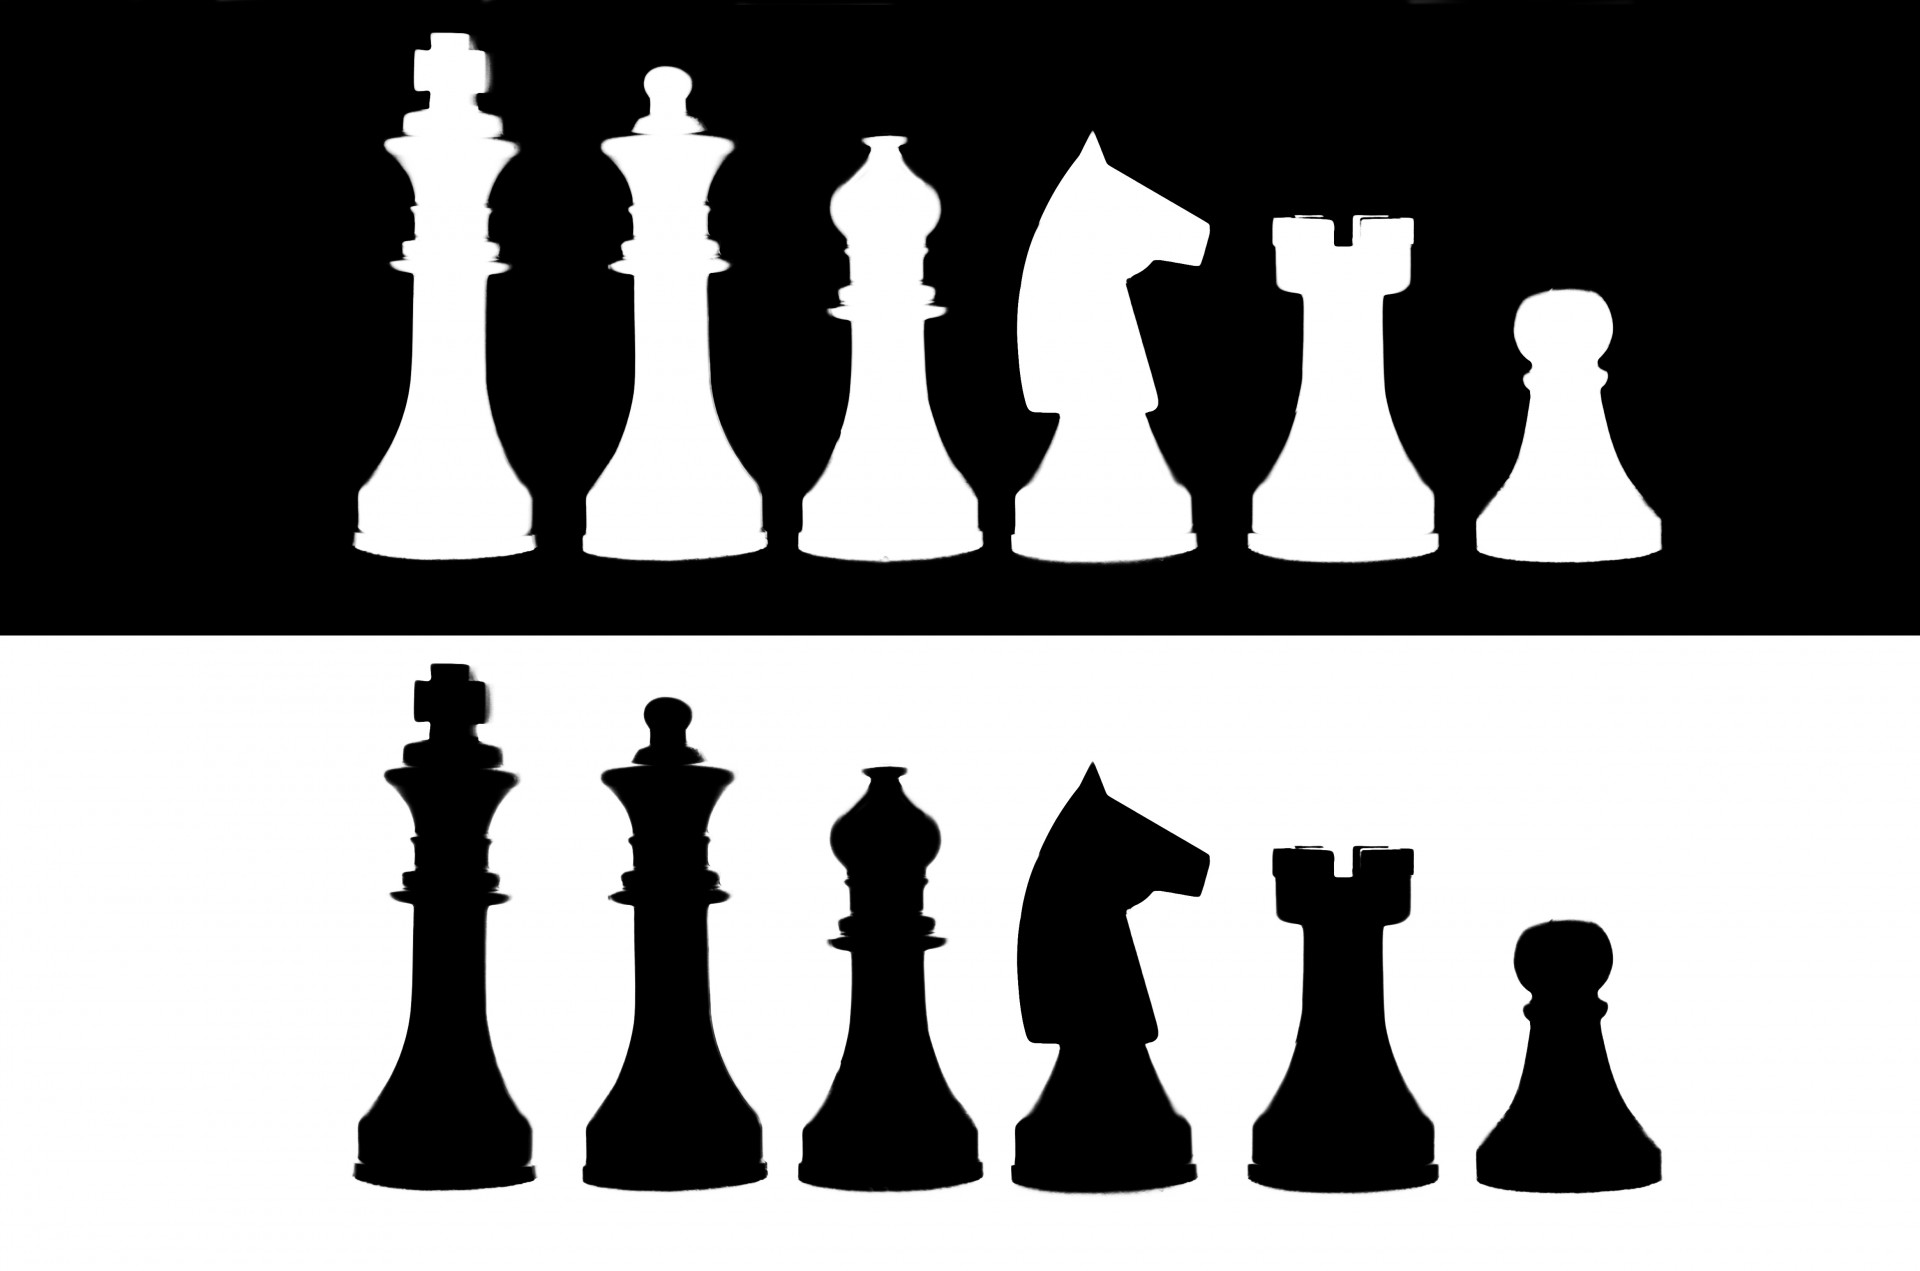 Piece free stock photo. Chess clipart chess board